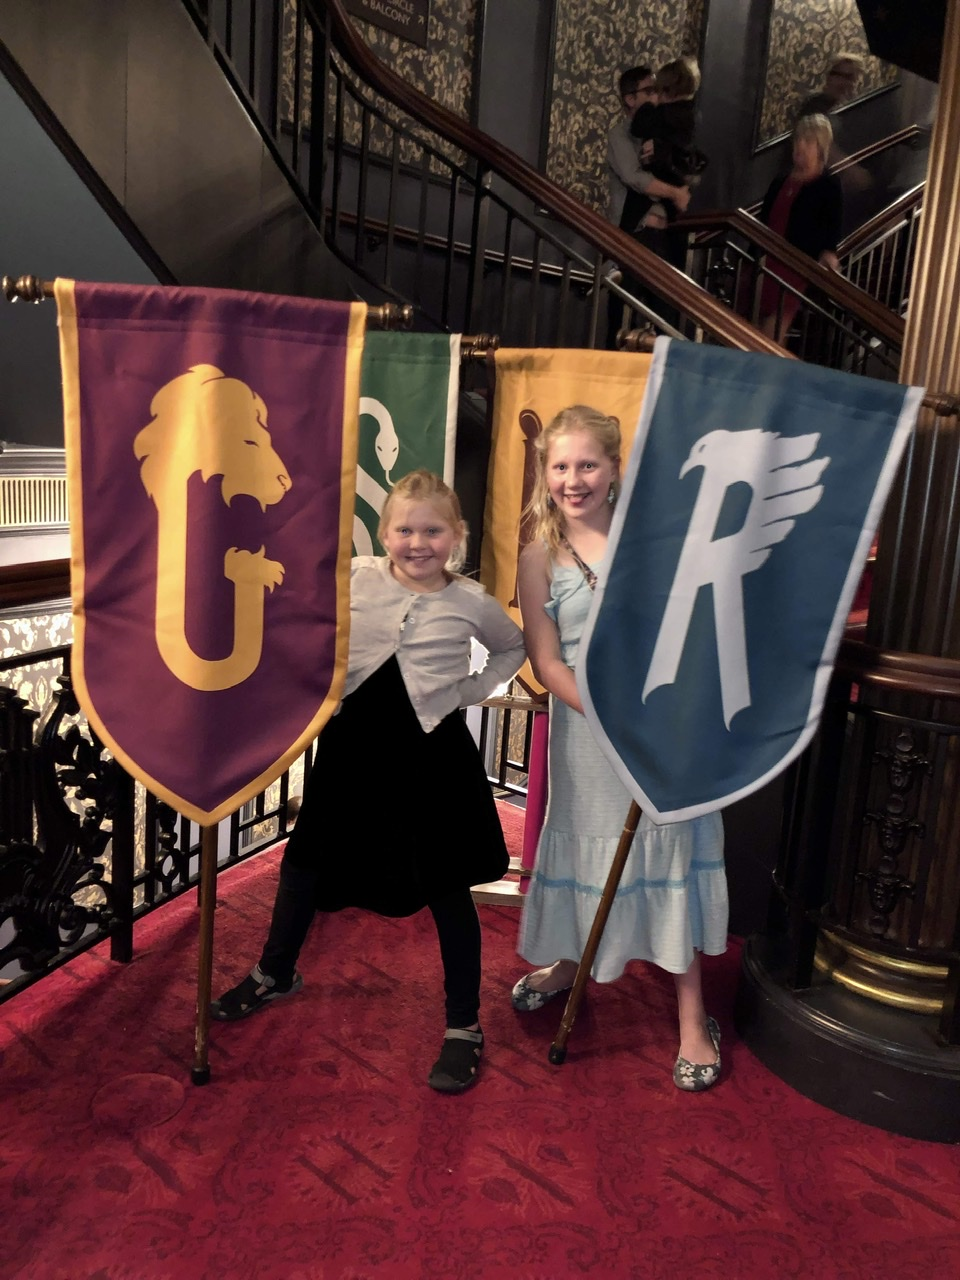 With their house flags